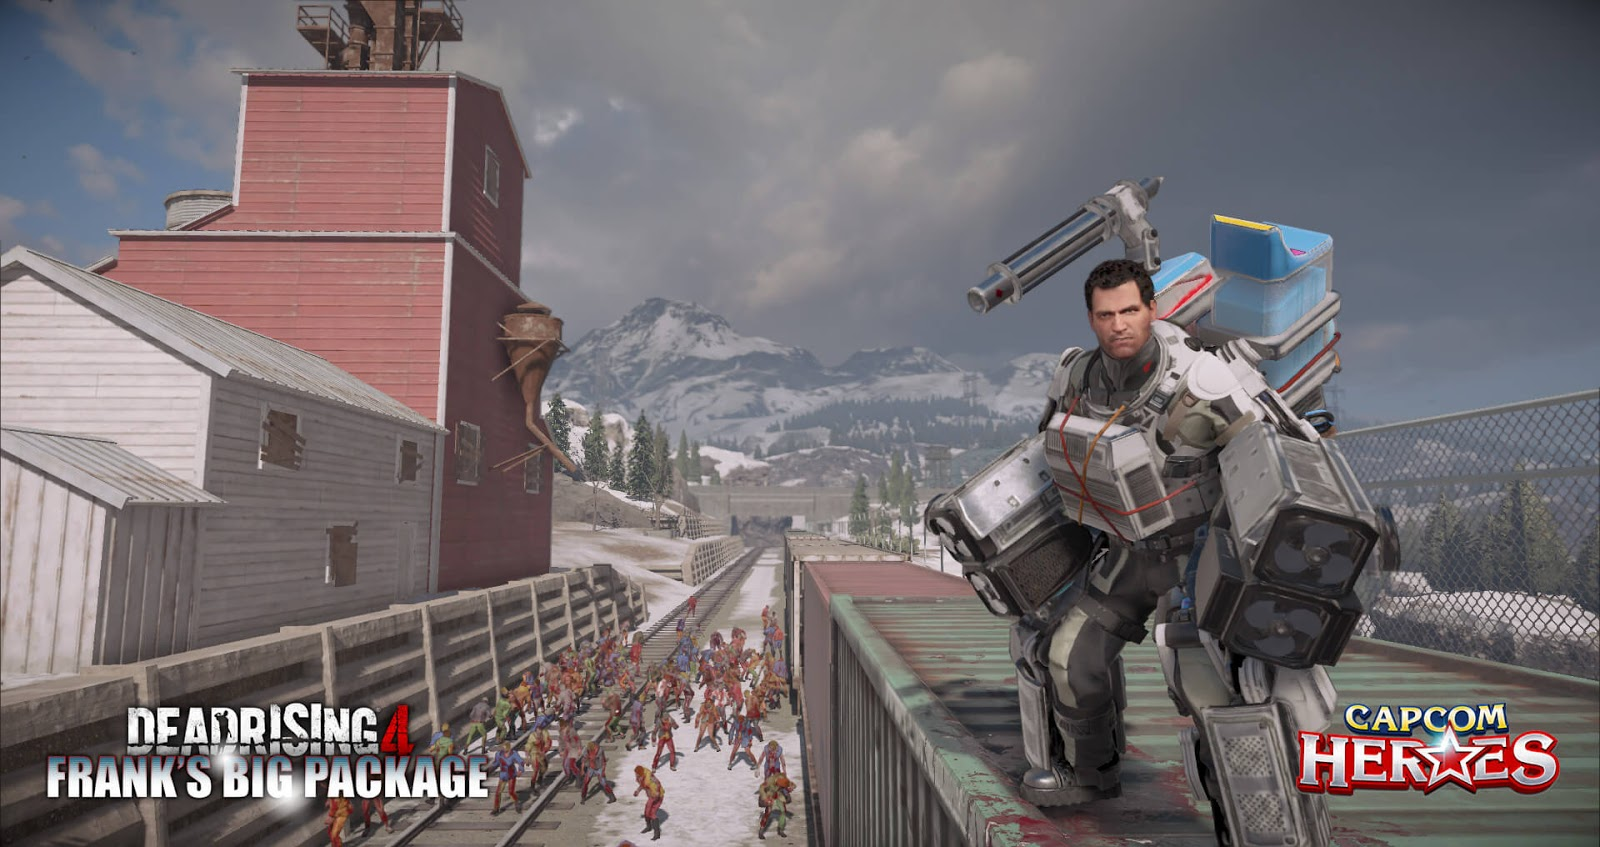 Dead Rising 4 Franks Big Package Comes To Playstation Gameslaught Frank West In Exo Suit